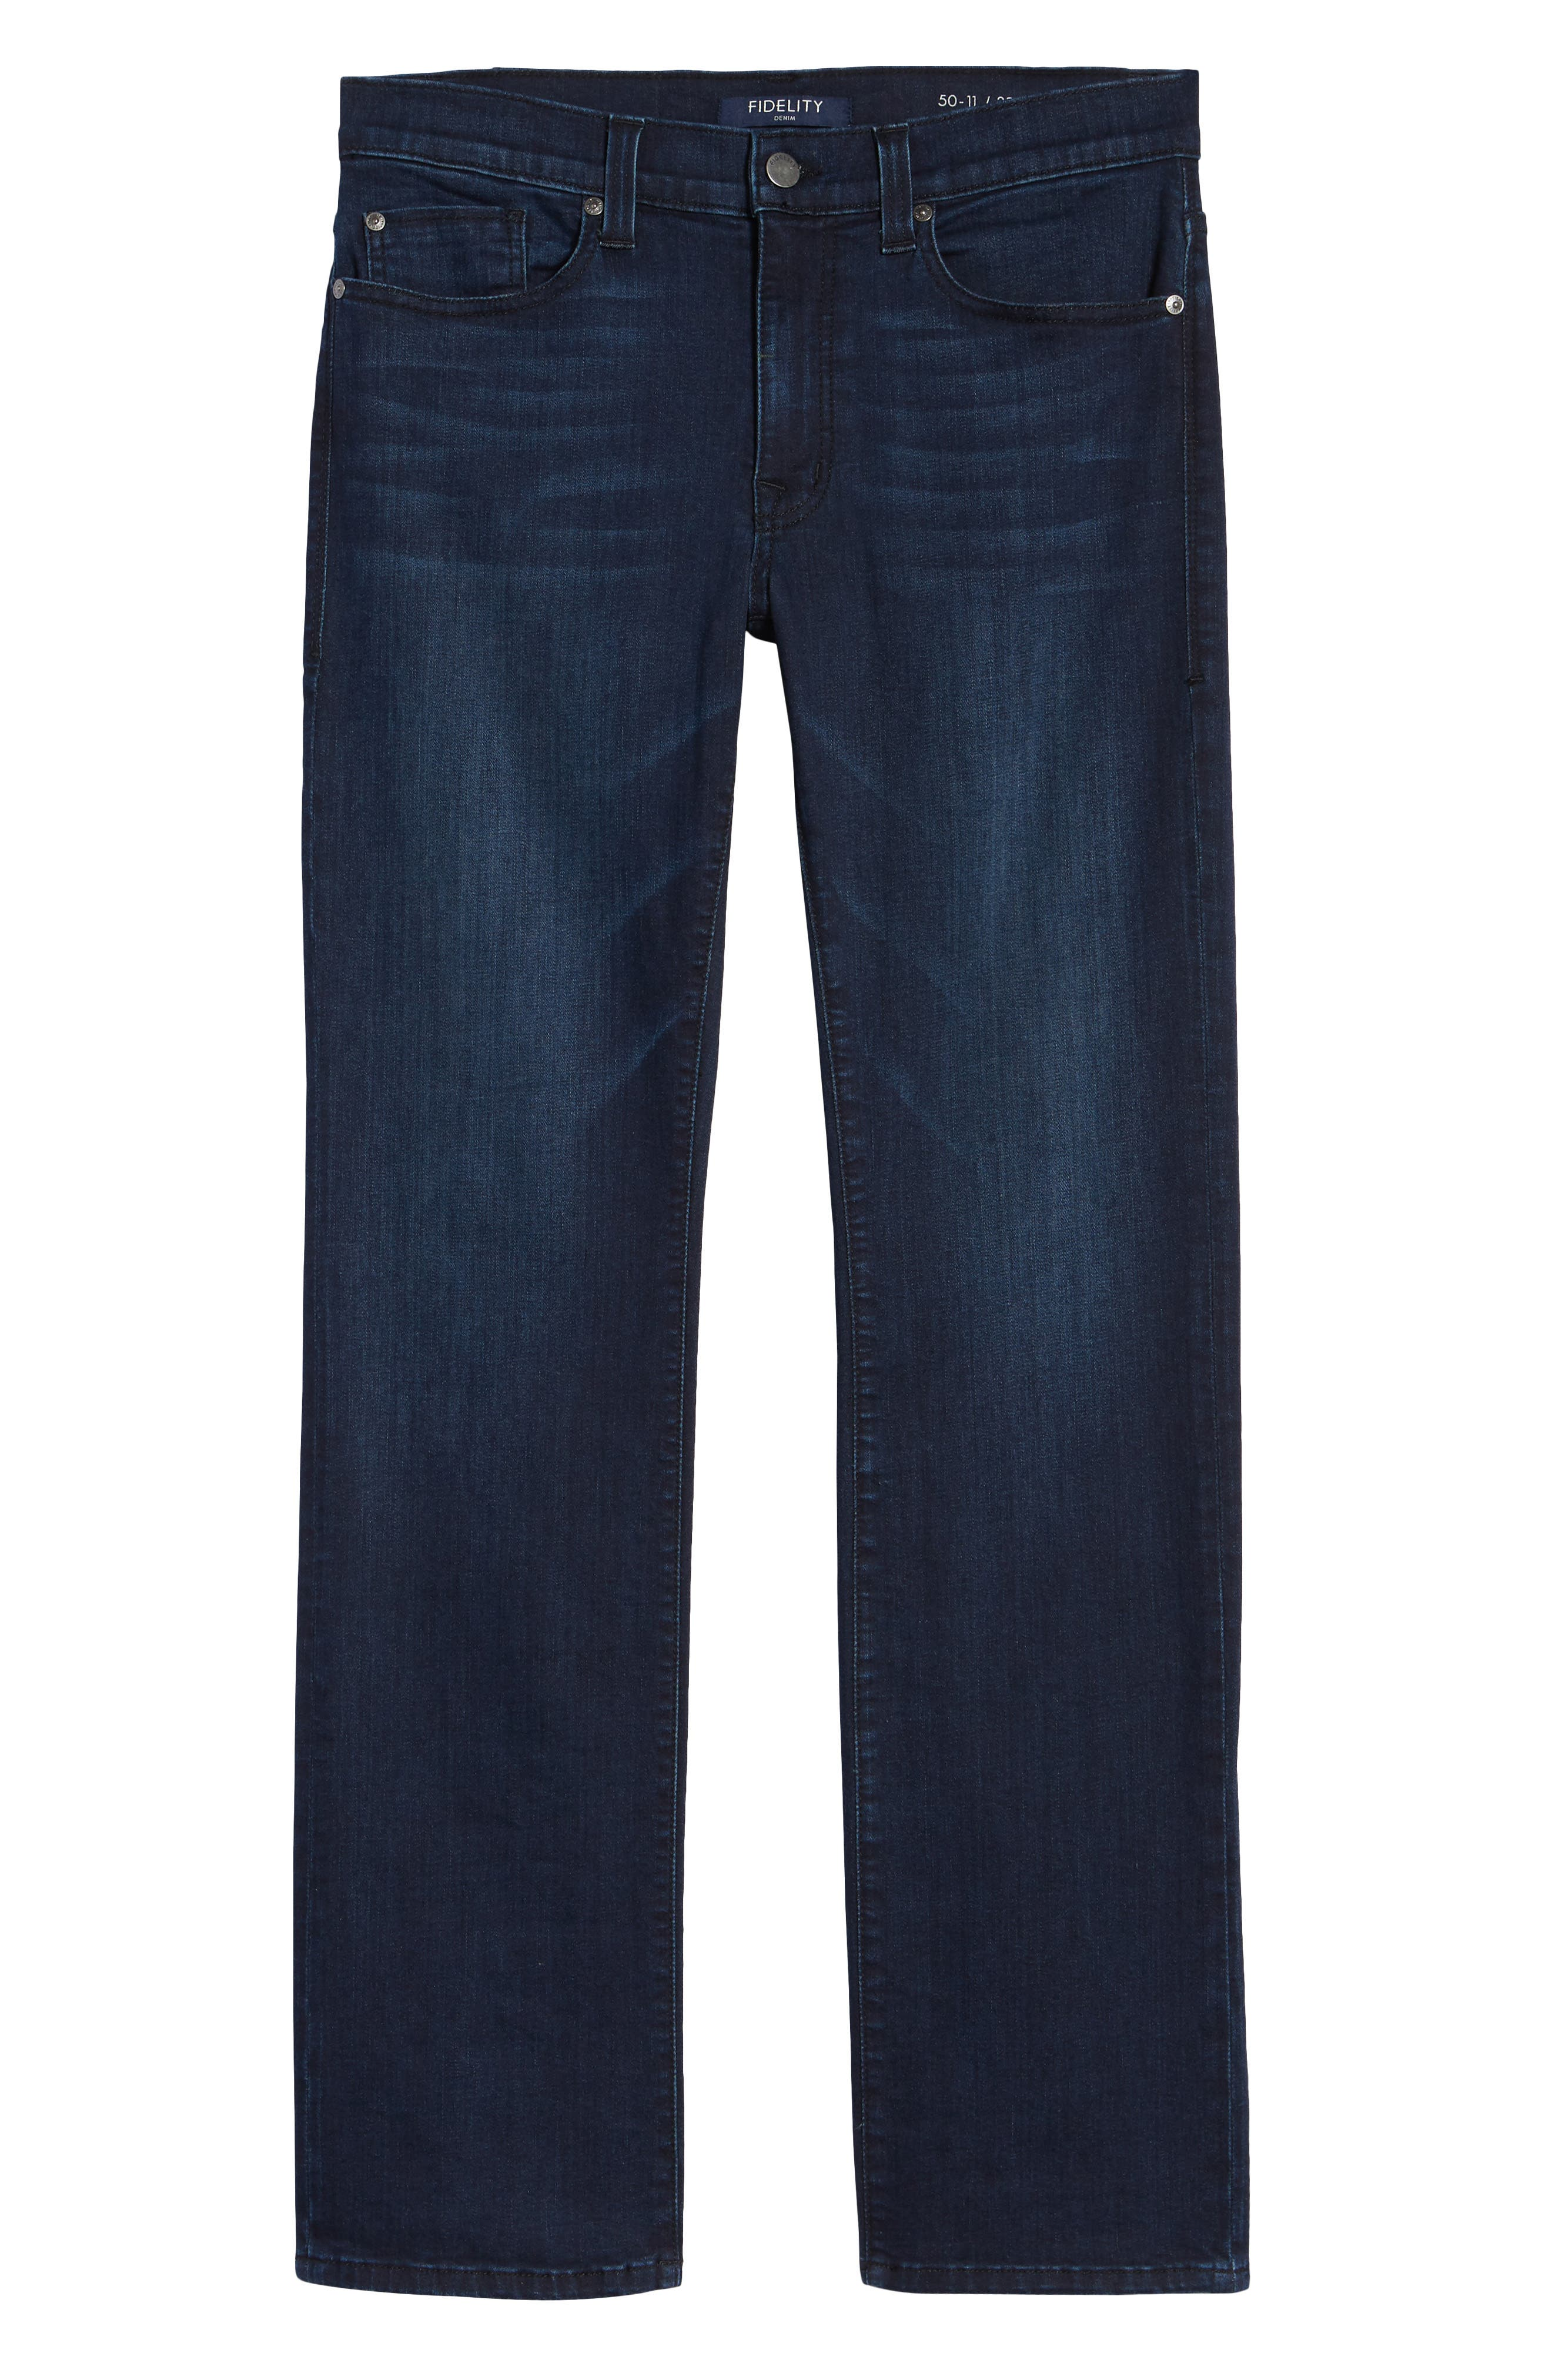 50-11 Relaxed Fit Jeans,                             Alternate thumbnail 6, color,                             HENDRIX